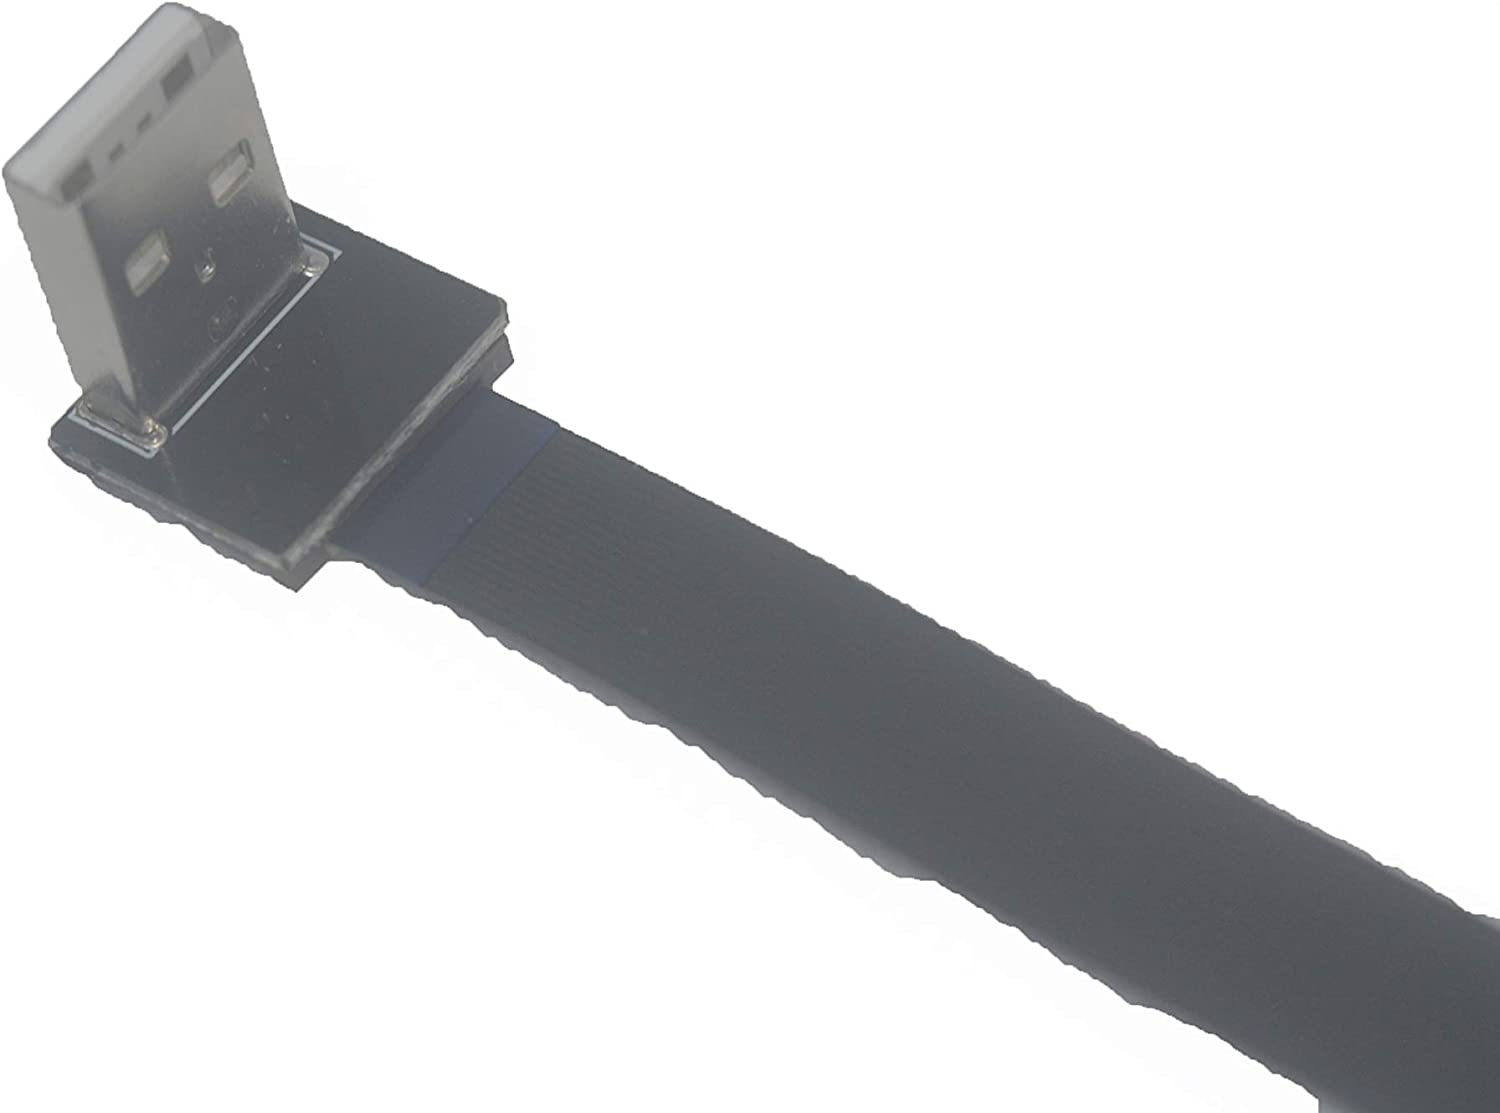 Short Flat Slim Thin Ribbon Standard USB A Male 90 Degree Angled to Standard USB A Male Straight for sync and Charging Black 15CM Standard USB A Down